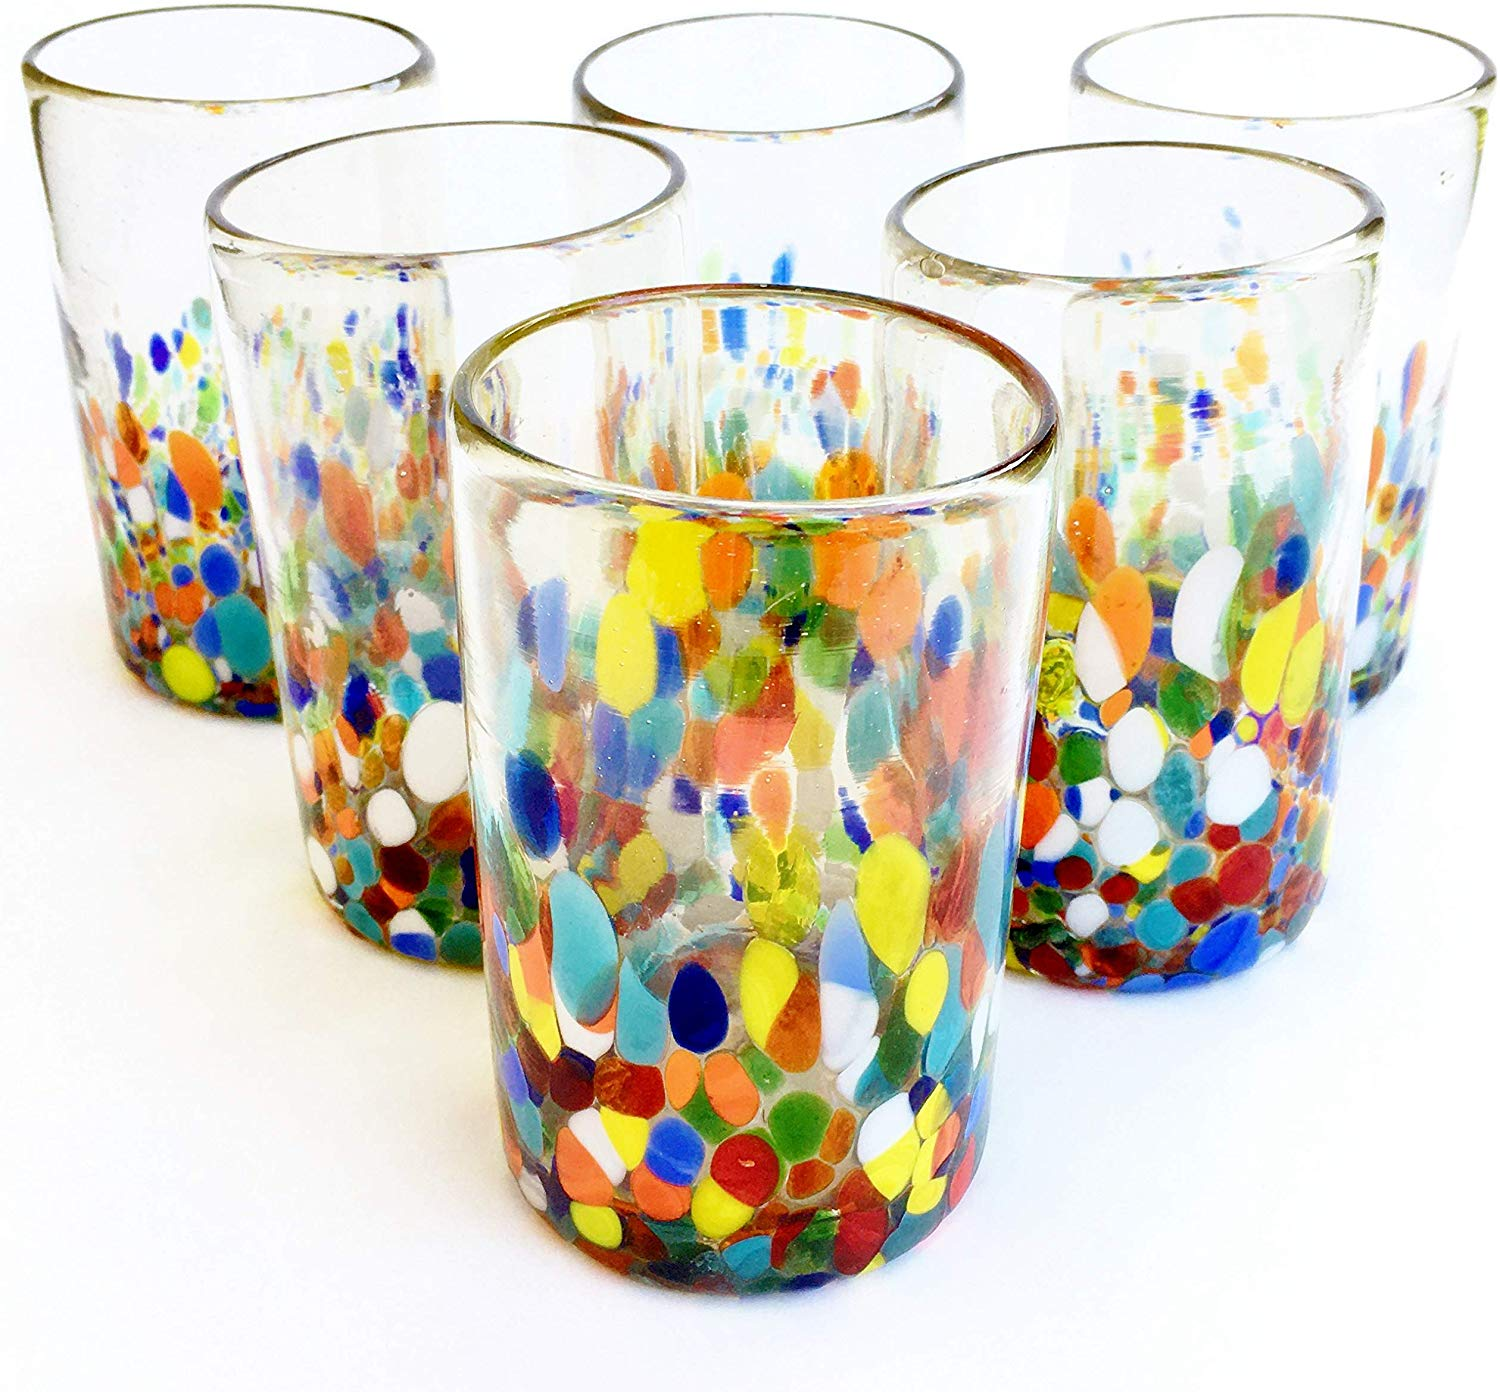 MEXICAN GLASSWARE / Clear & Confetti drinking glasses (set of 6) / Our Clear & Confetti drinking glasses combine the best of two worlds: clear, thick, sturdy handcrafted glass on top, meets the colorful, festive, confetti bottom! These glasses will sure be a standout in any table setting or as a fabulous gift for your loved ones. Crafted one by one by skilled artisans in Tonala, Mexico, each glass is different from the next making them unique works of art. You'll be amazed at how they make having a simple glass of water a happier experience. Each glass holds approximately 14 oz of liquid and stands a bit over 5